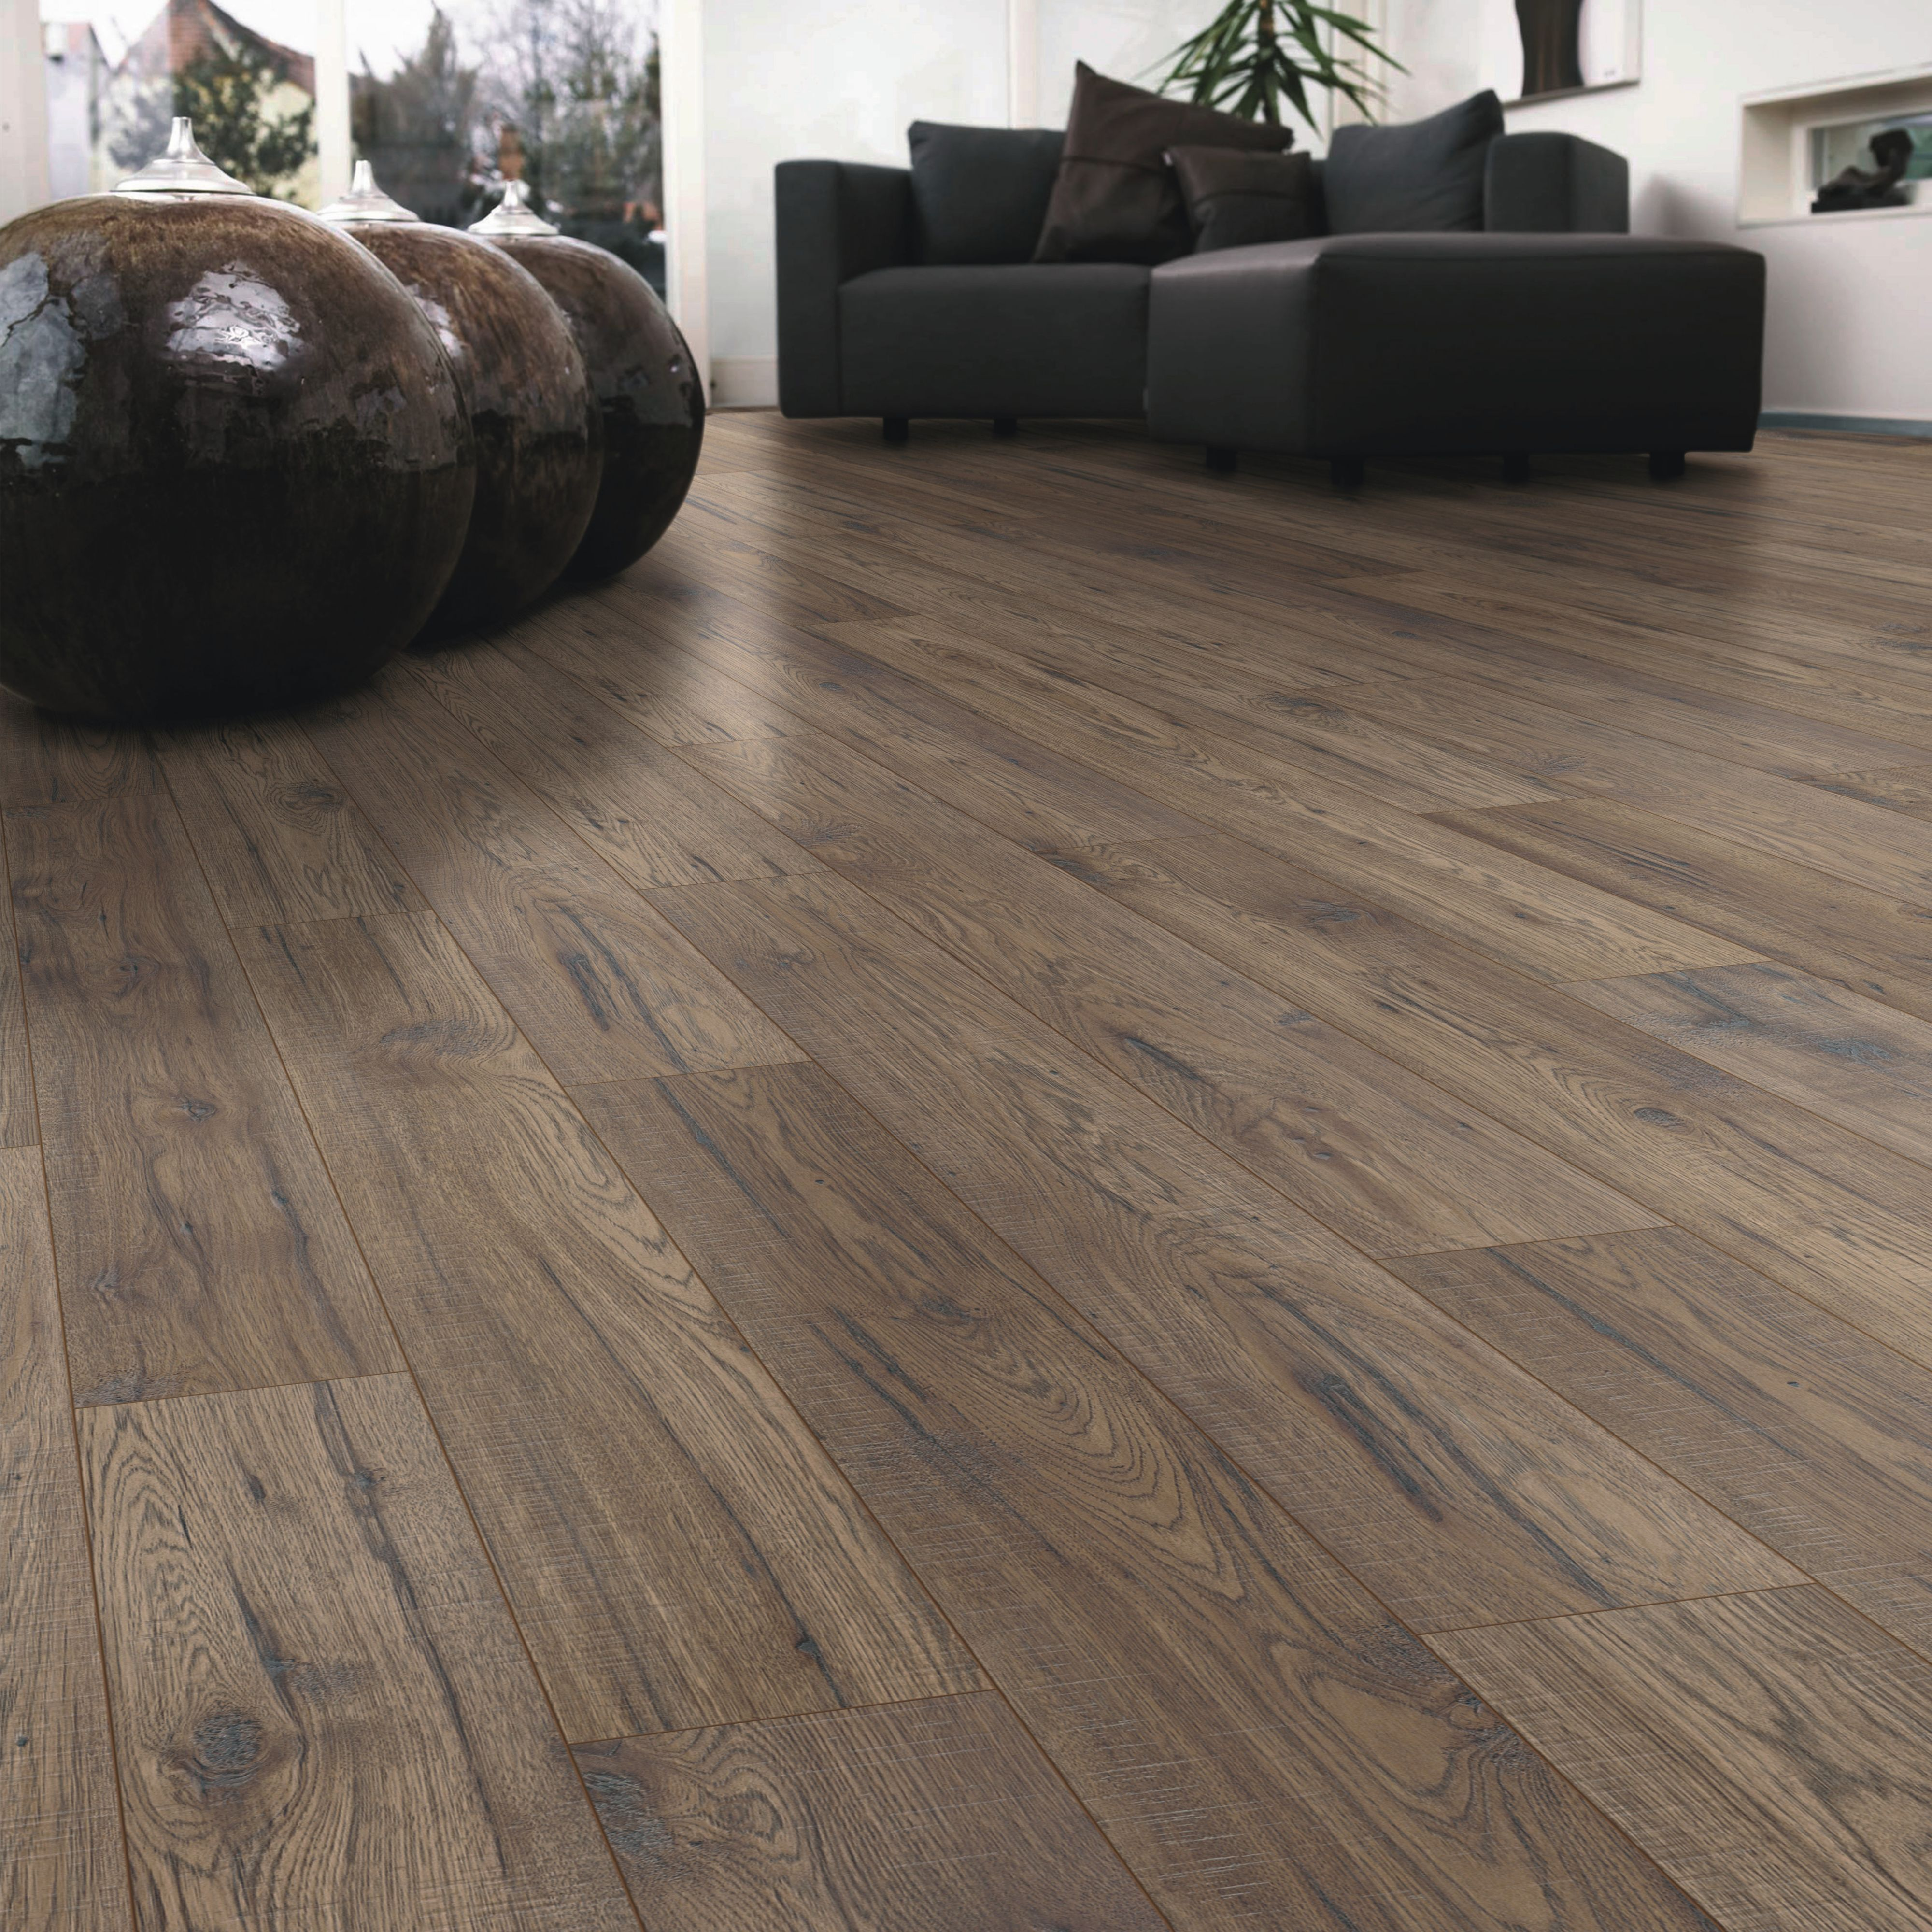 Ostend ascot oak effect laminate flooring m pack - What is laminate flooring ...